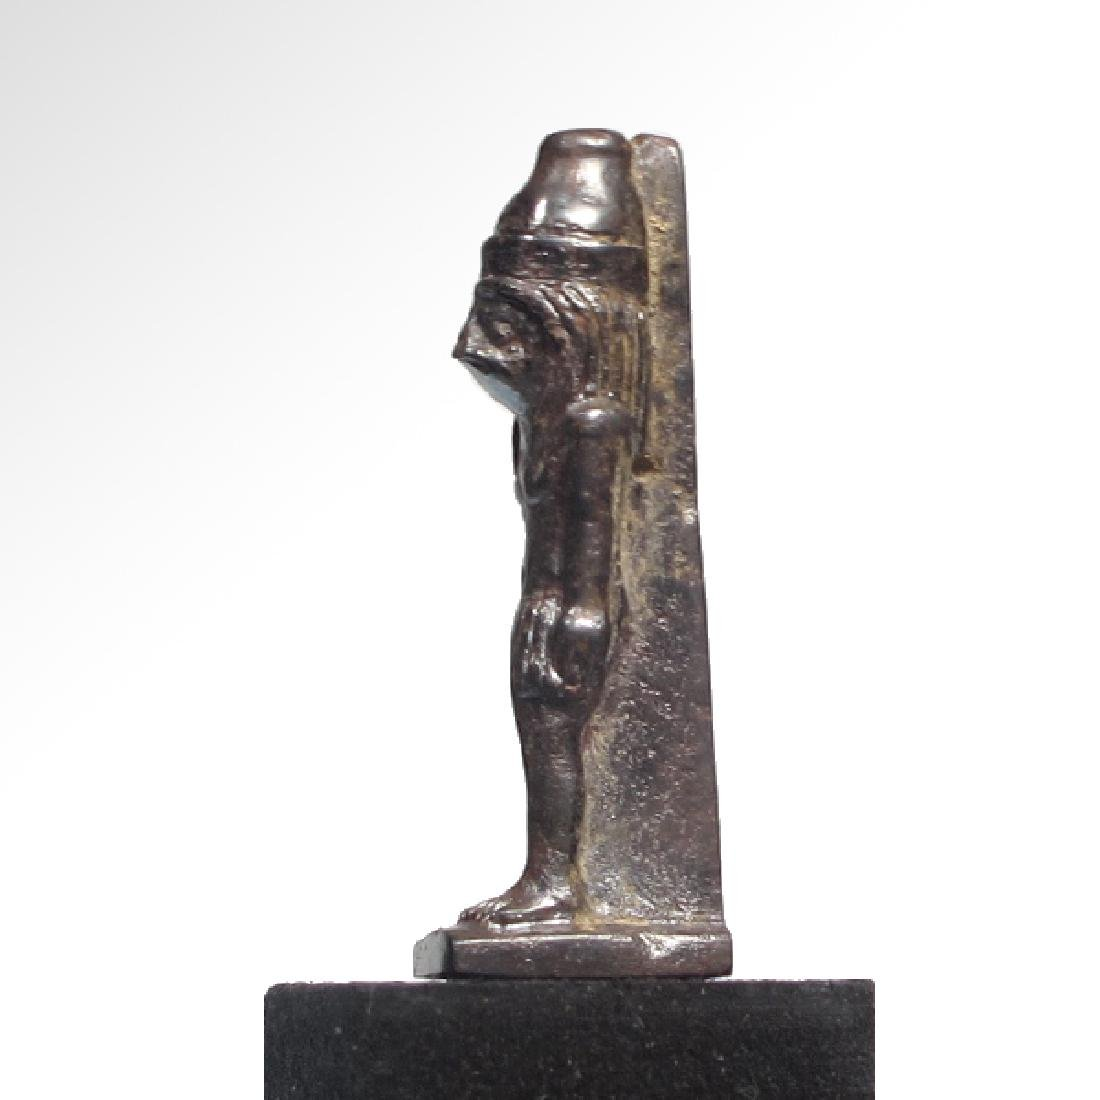 Egyptian Hematite Amulet of the Standing Falcon-Headed - 5